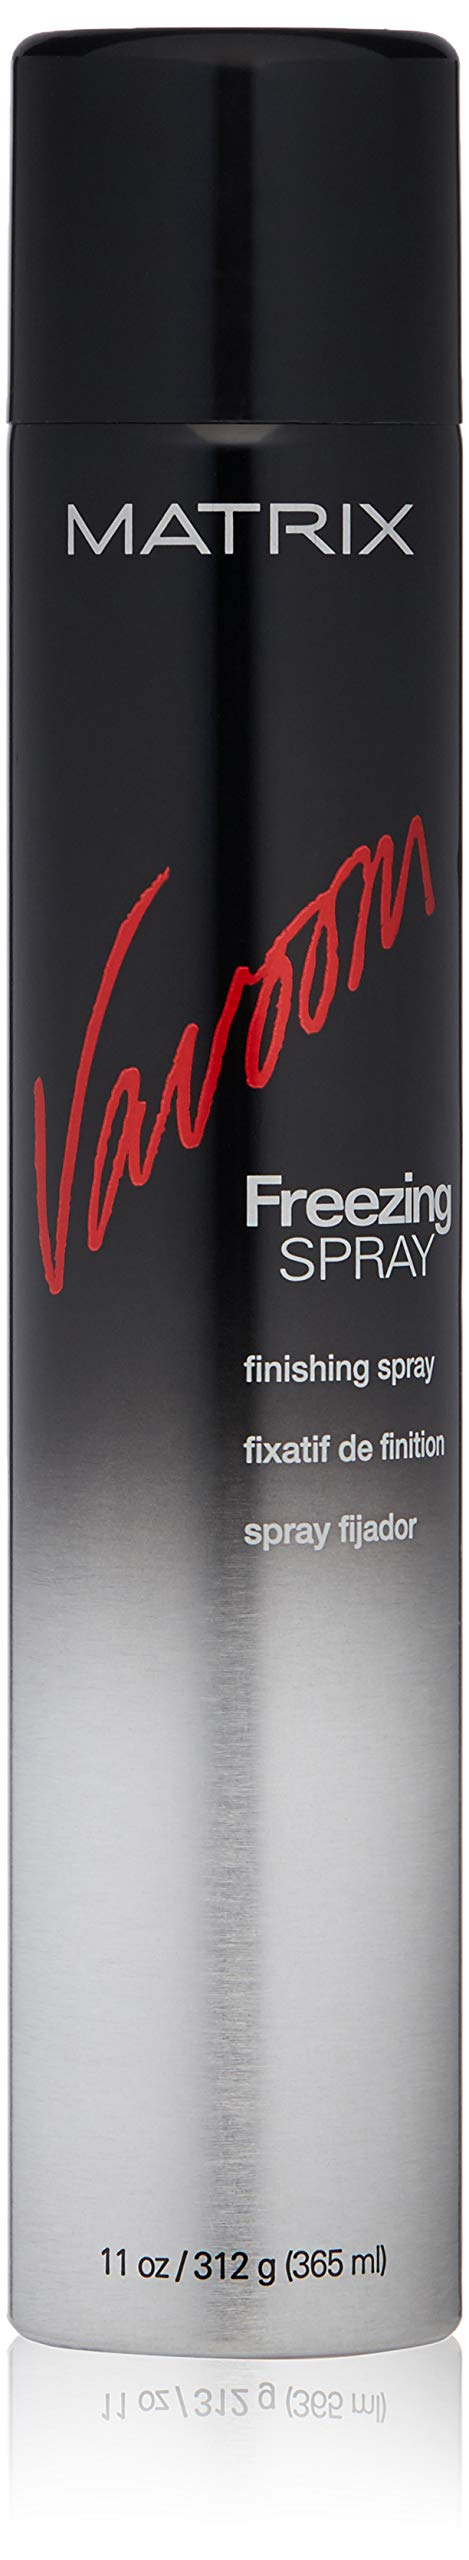 Matrix Vavoom Freezing Finishing Hairspray Extra Firm Hold, 11 Oz. by MATRIX